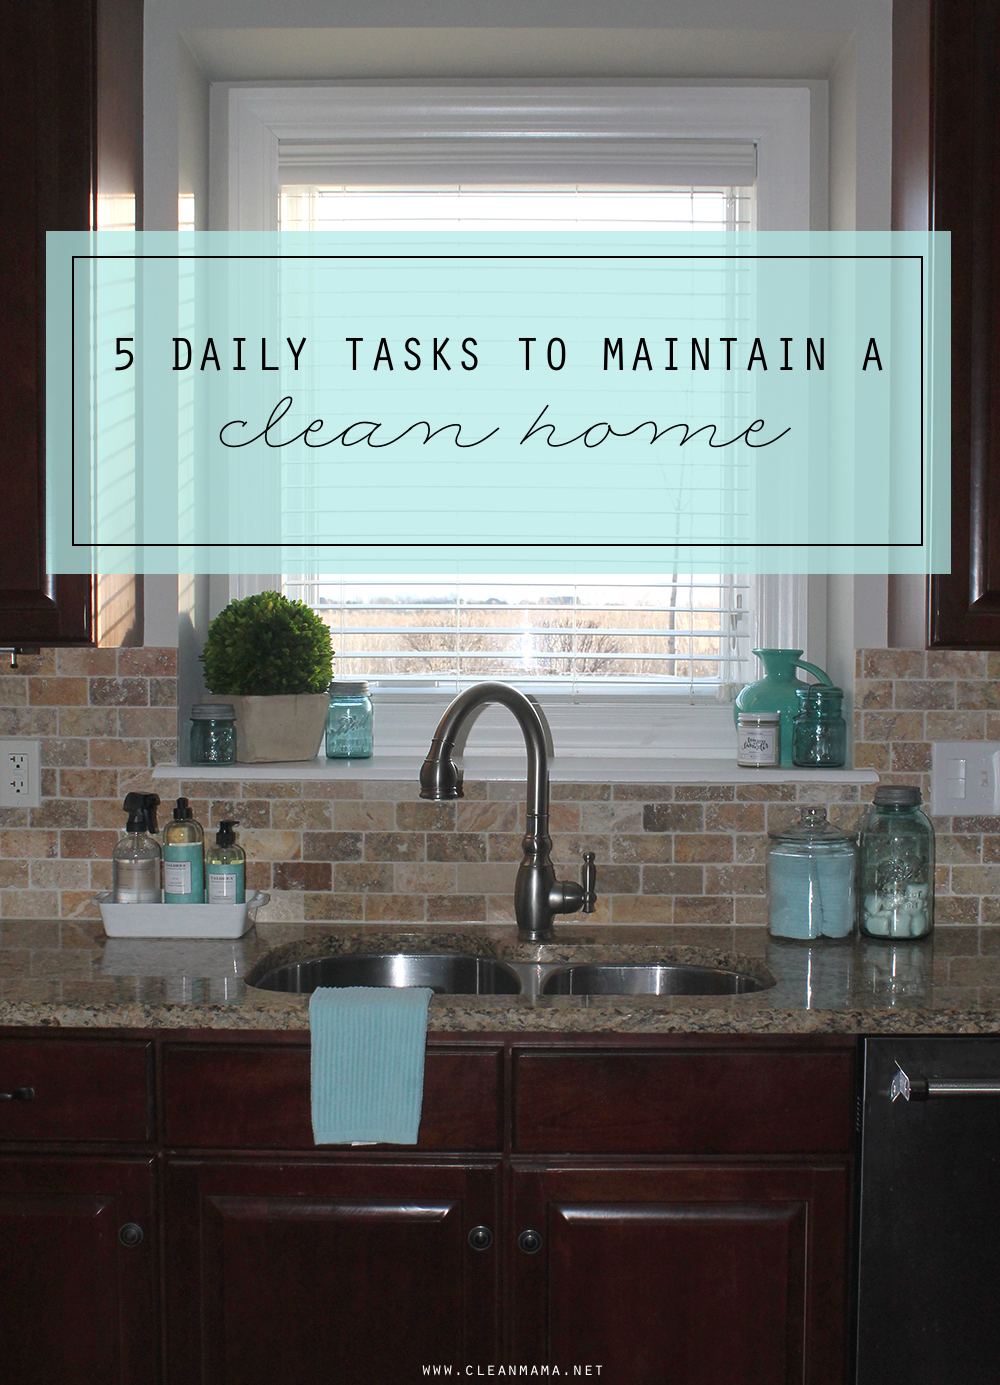 5 Daily Tasks to Maintain a Clean Home - Clean Mama